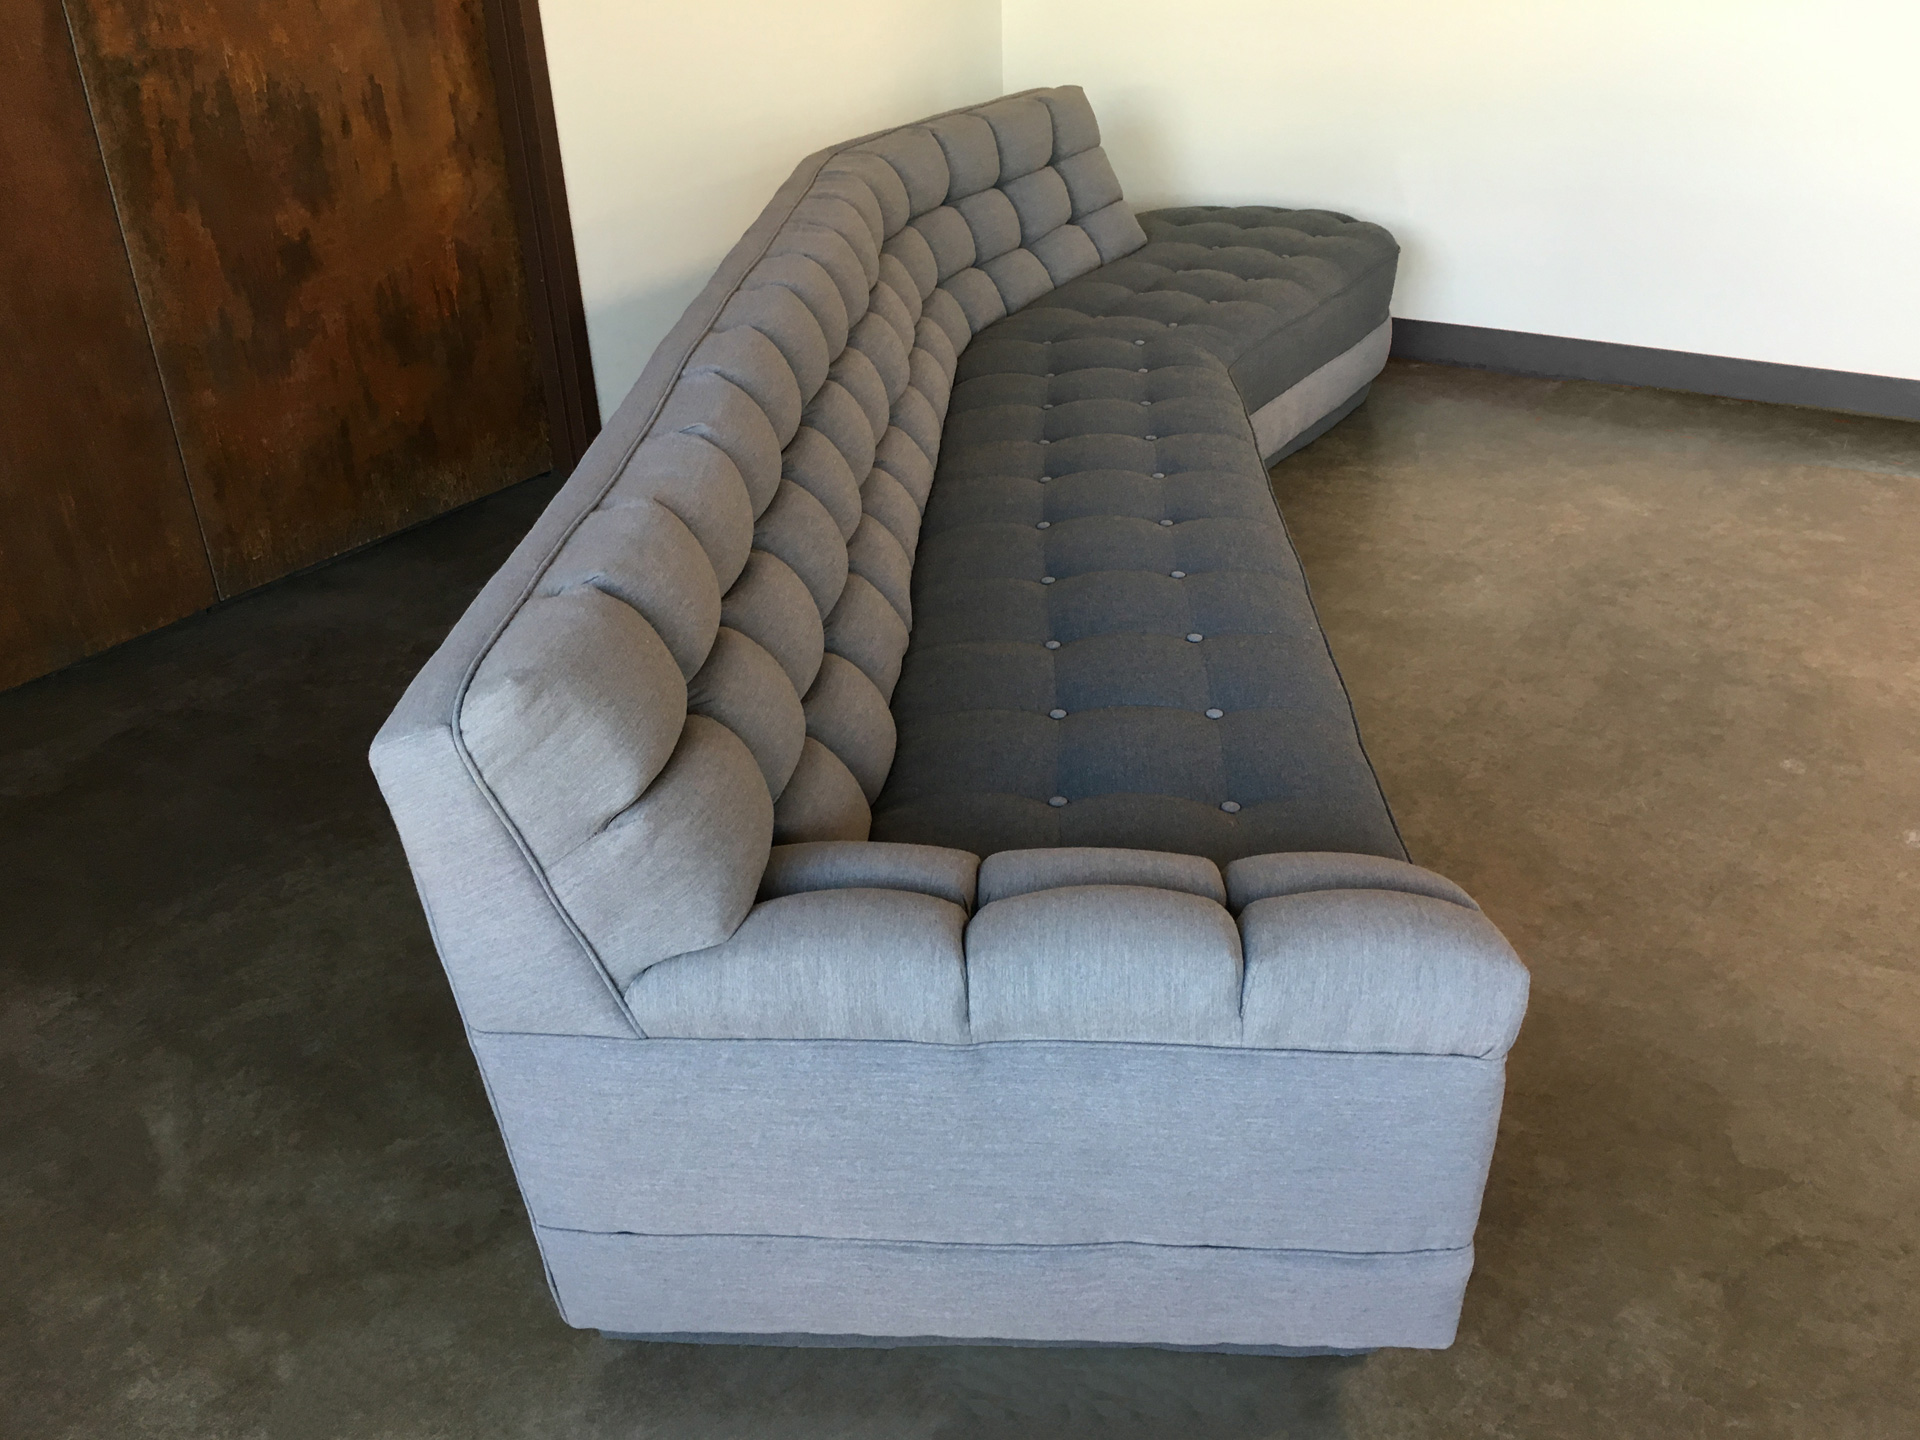 Side detail of Couch Lounger